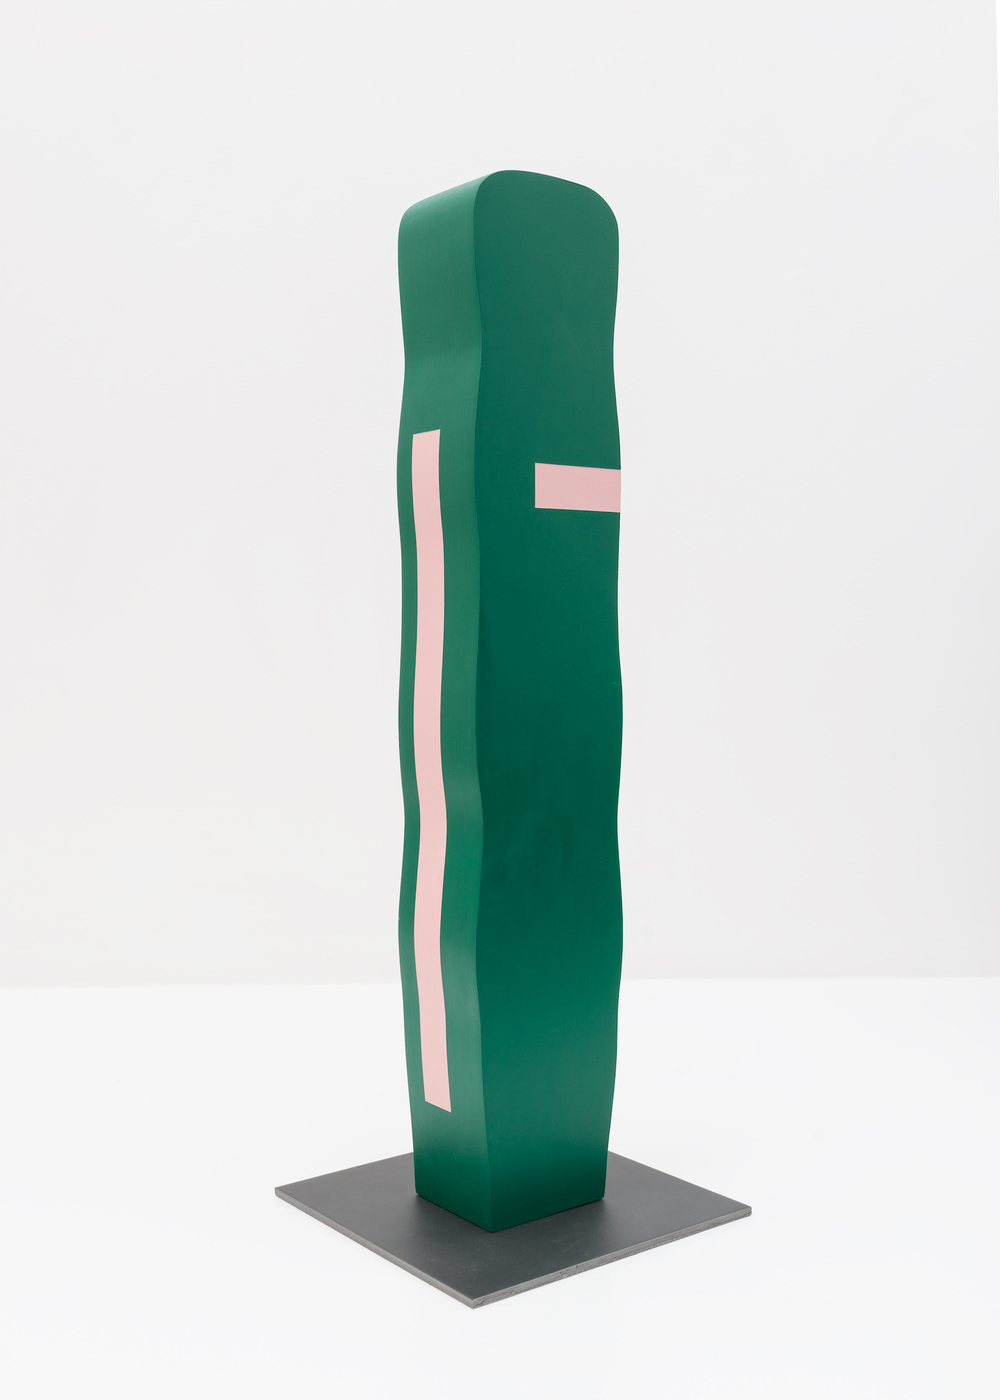 "Lisa Williamson Untitled 2015 Acrylic on wood, steel base 23 1/2"" x 8"" x 8"" LW148"